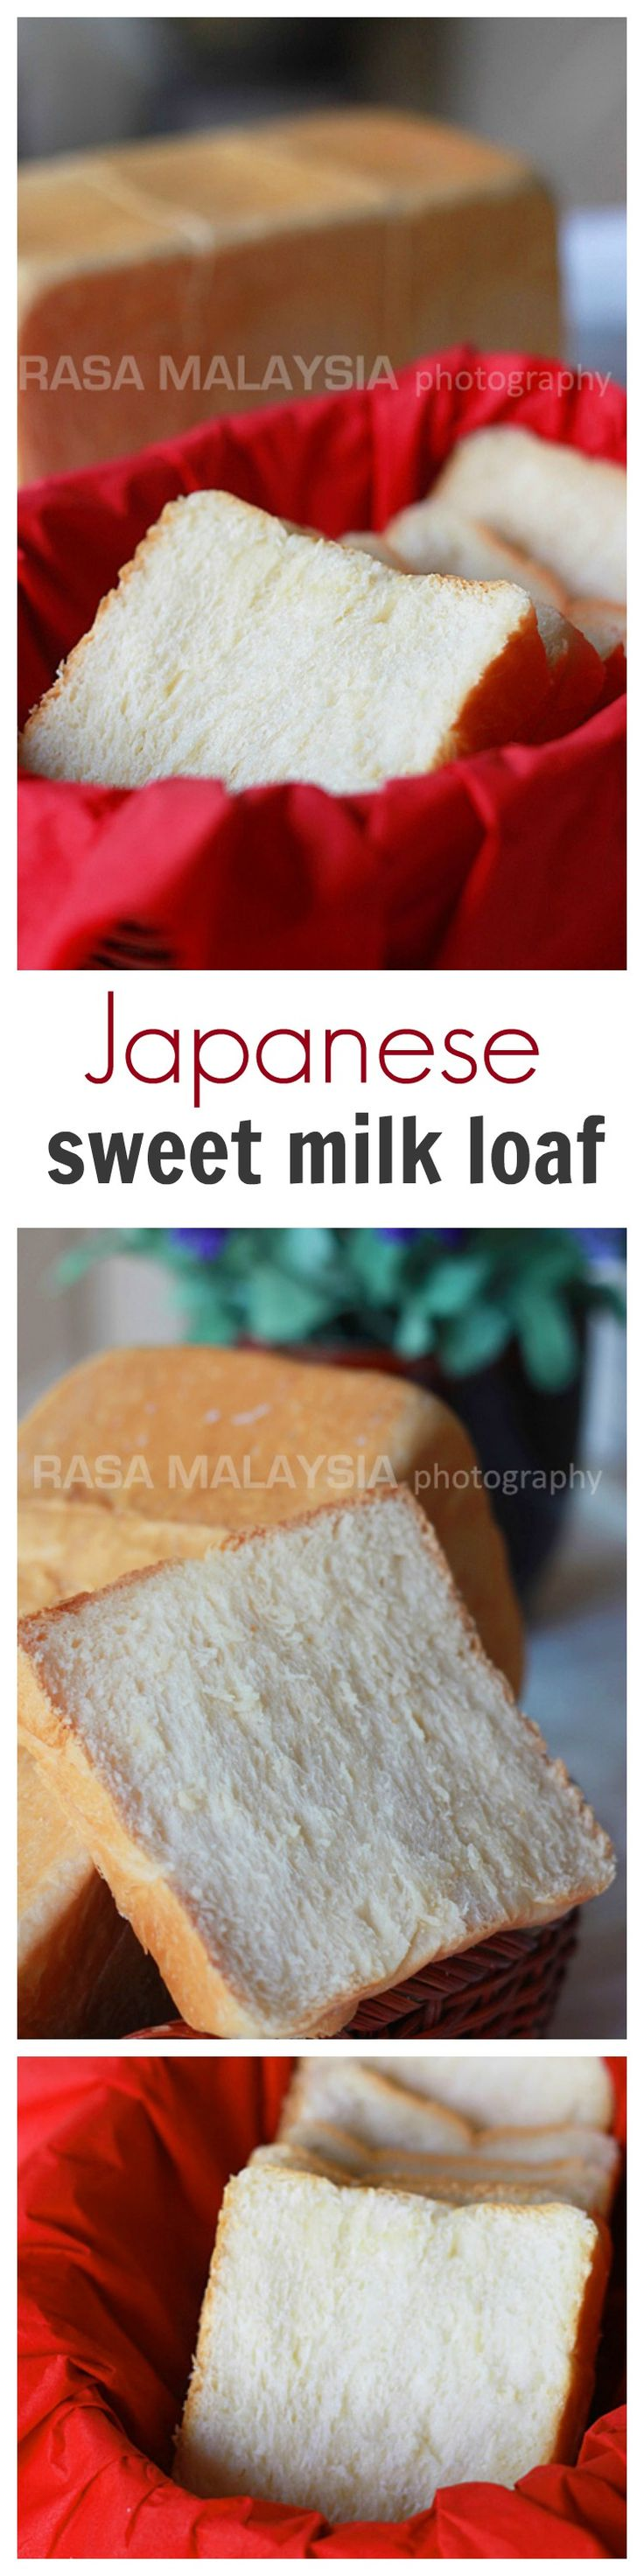 Japanese Shoku Pan // 4 1/2 c bread flour 1/2 c AP flour 250ml milk 190ml whipping cream 1 egg 2 T milk powder 4 T fine sugar 3 t dry yeast 1/2 T salt After proof, make 4 balls, roll out to squares, roll them tight, put 2 in a loaf pan, rise, bake @ 375 for 45-50 min.